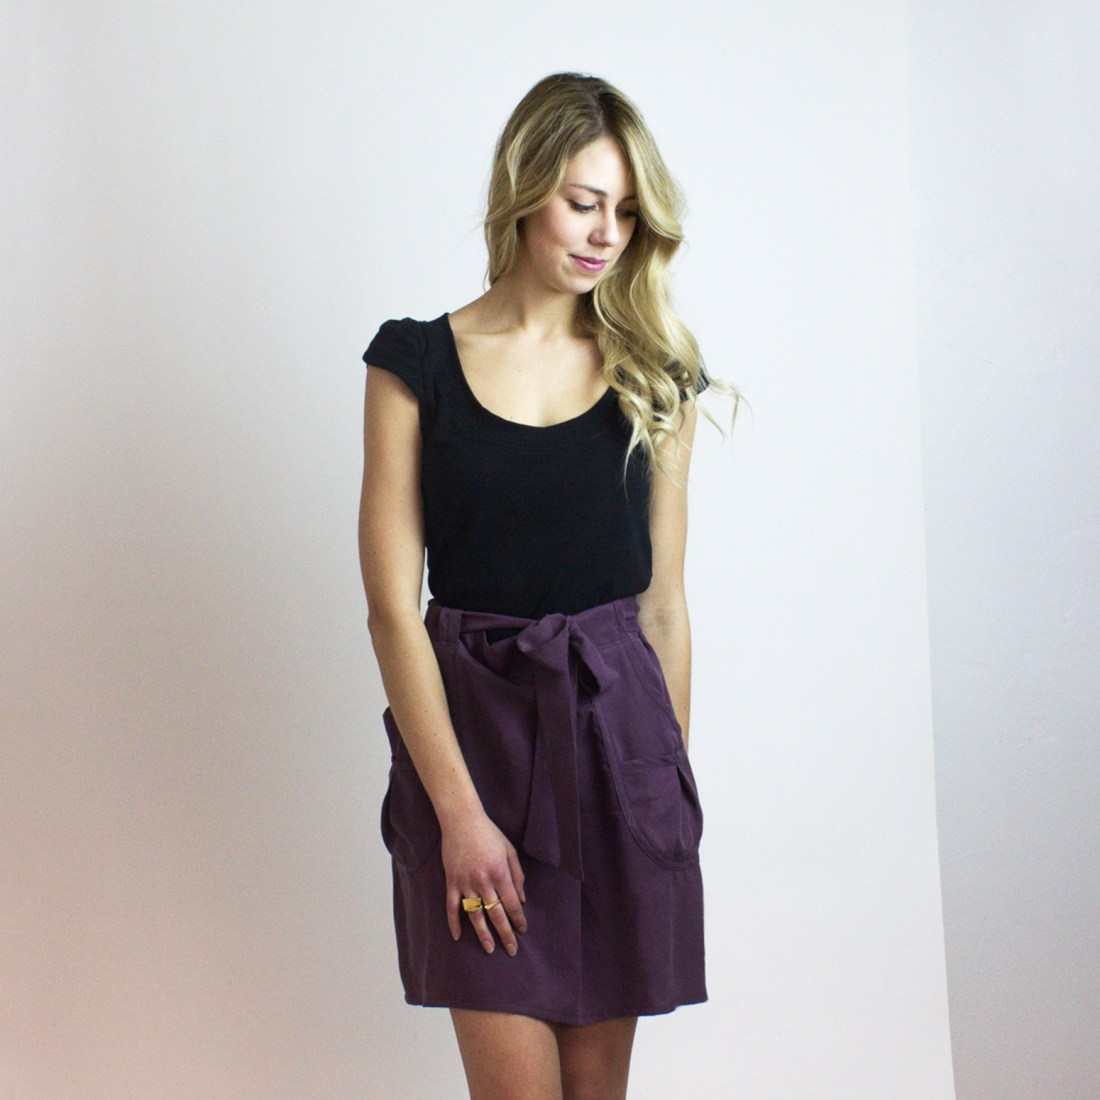 Scallop Tee (black bamboo stretch jersey) & Plum Rula Skirt from Simone's Rose SS16 Collection | eco-conscious and sustainable women's fashion label made in downtown Toronto